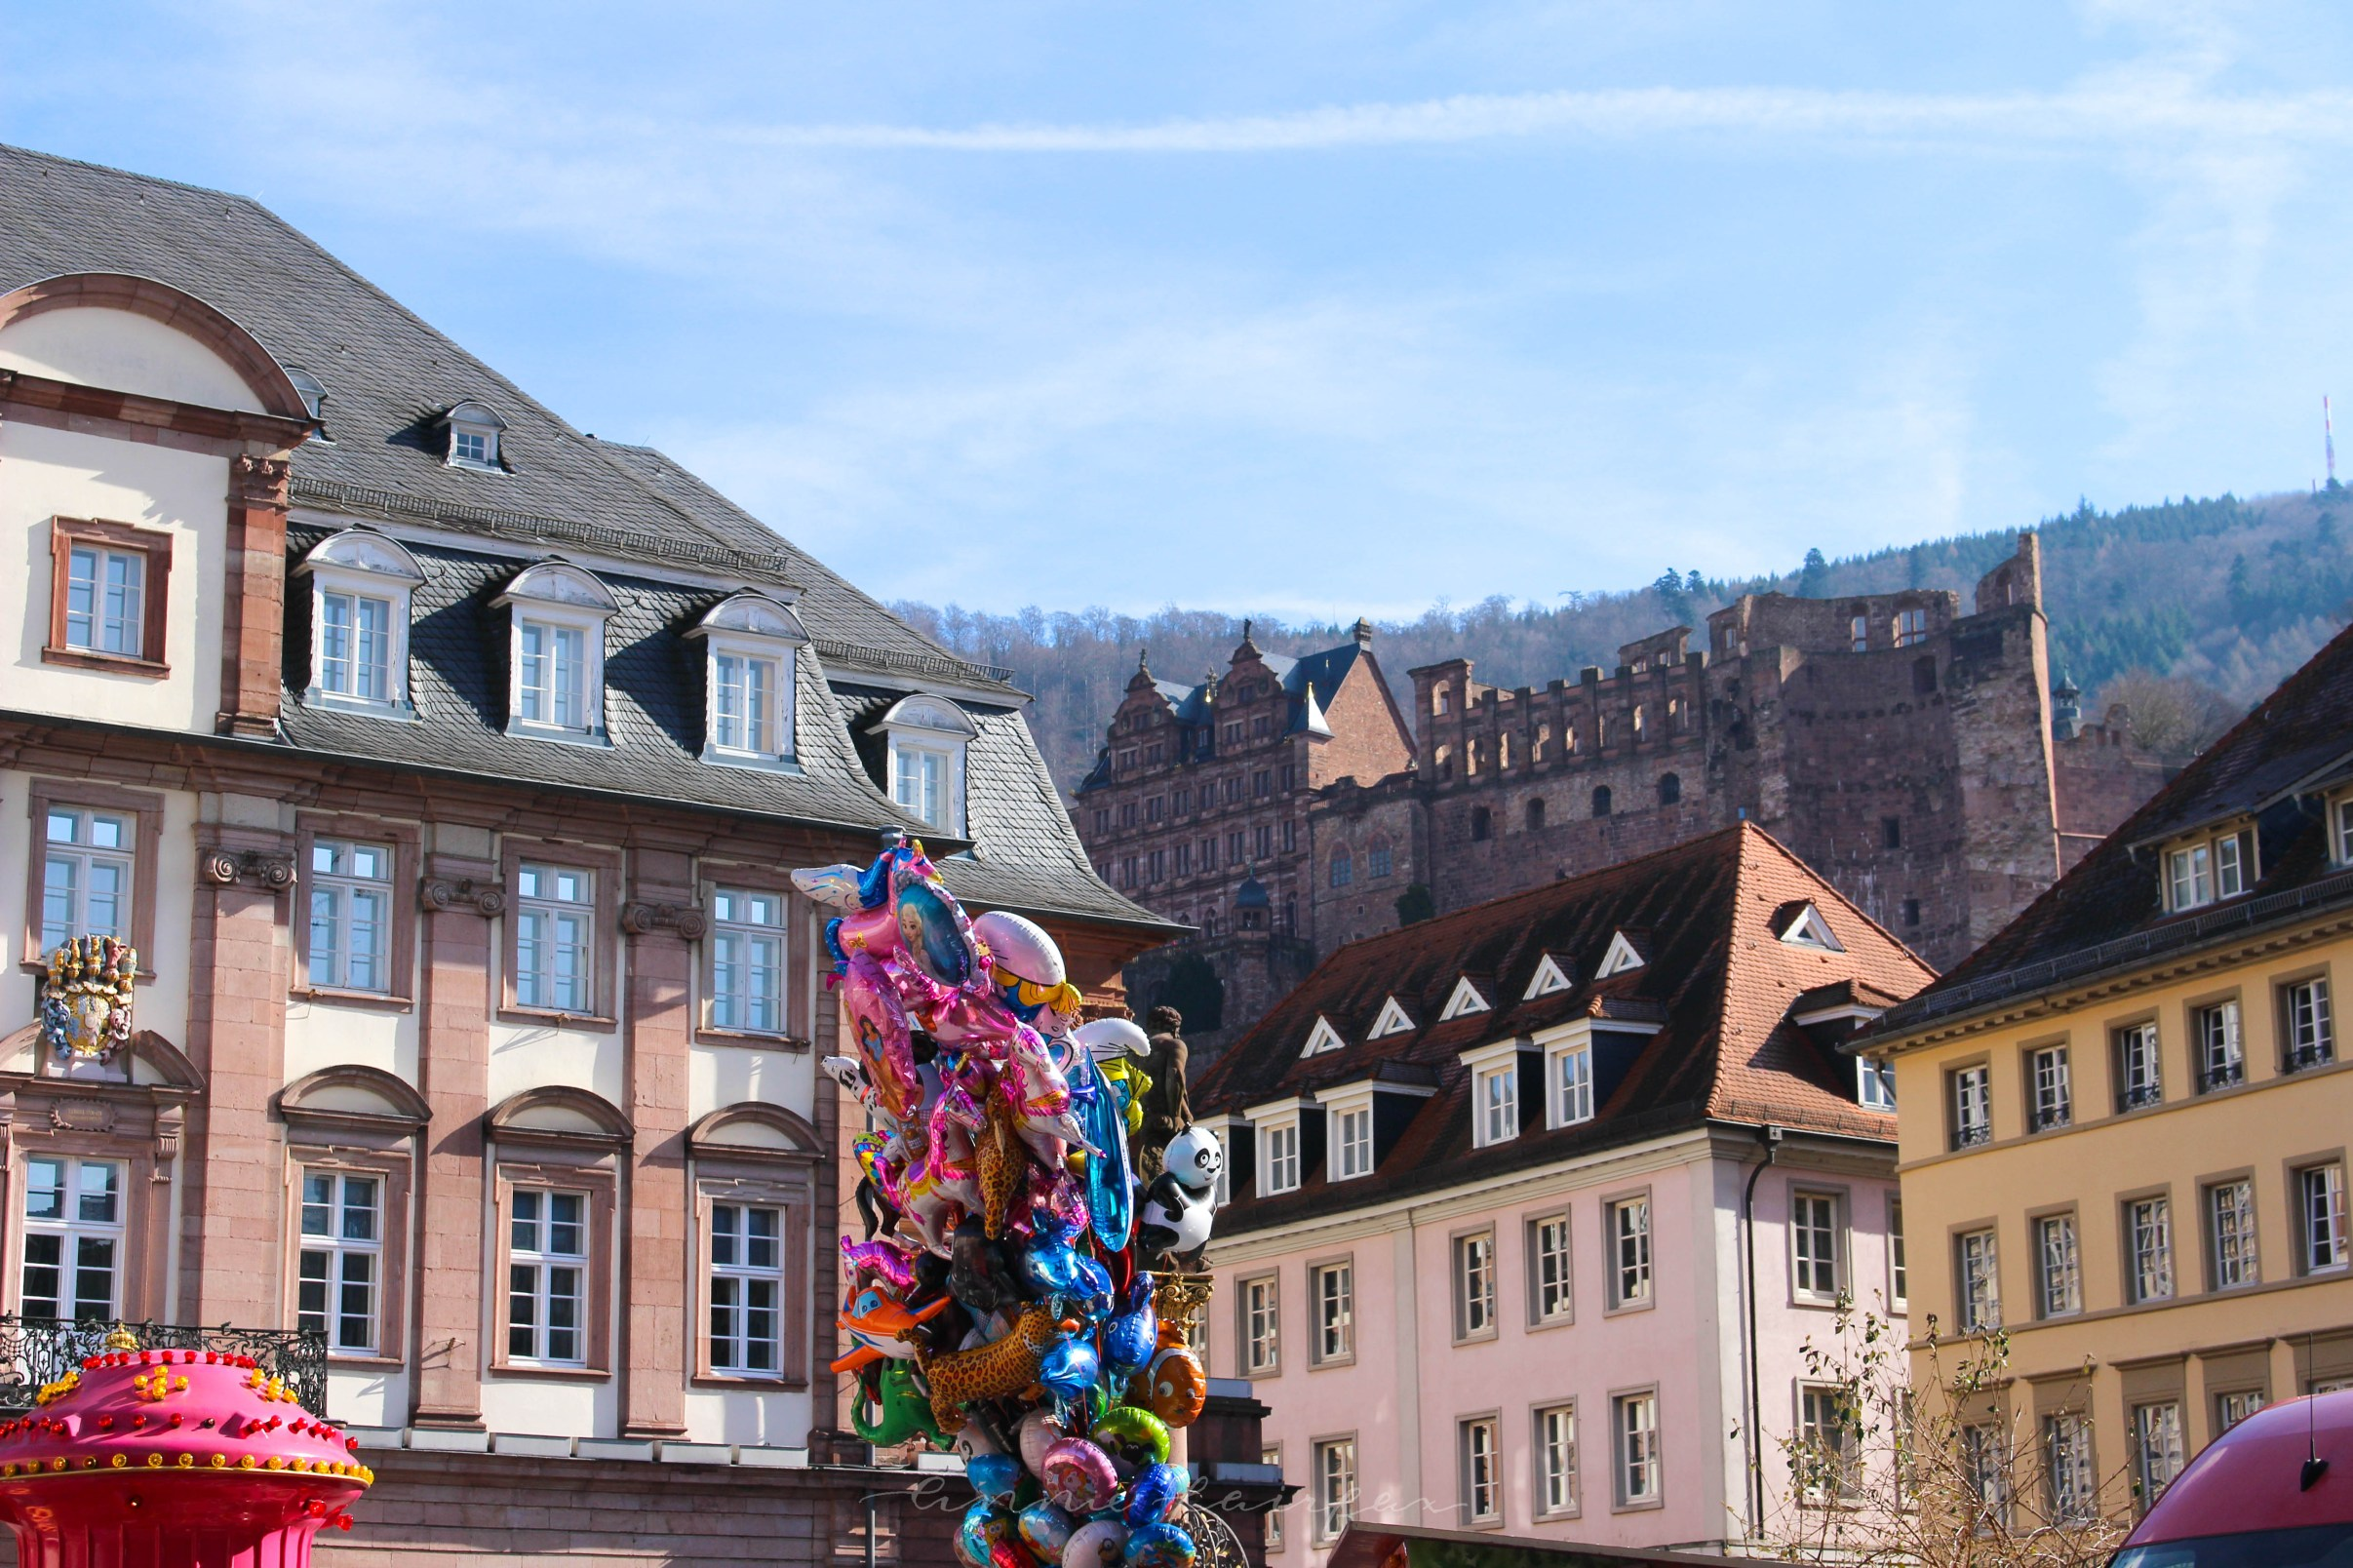 Heidelberg, Germany Travel Guide: What to See, Eat, and Do